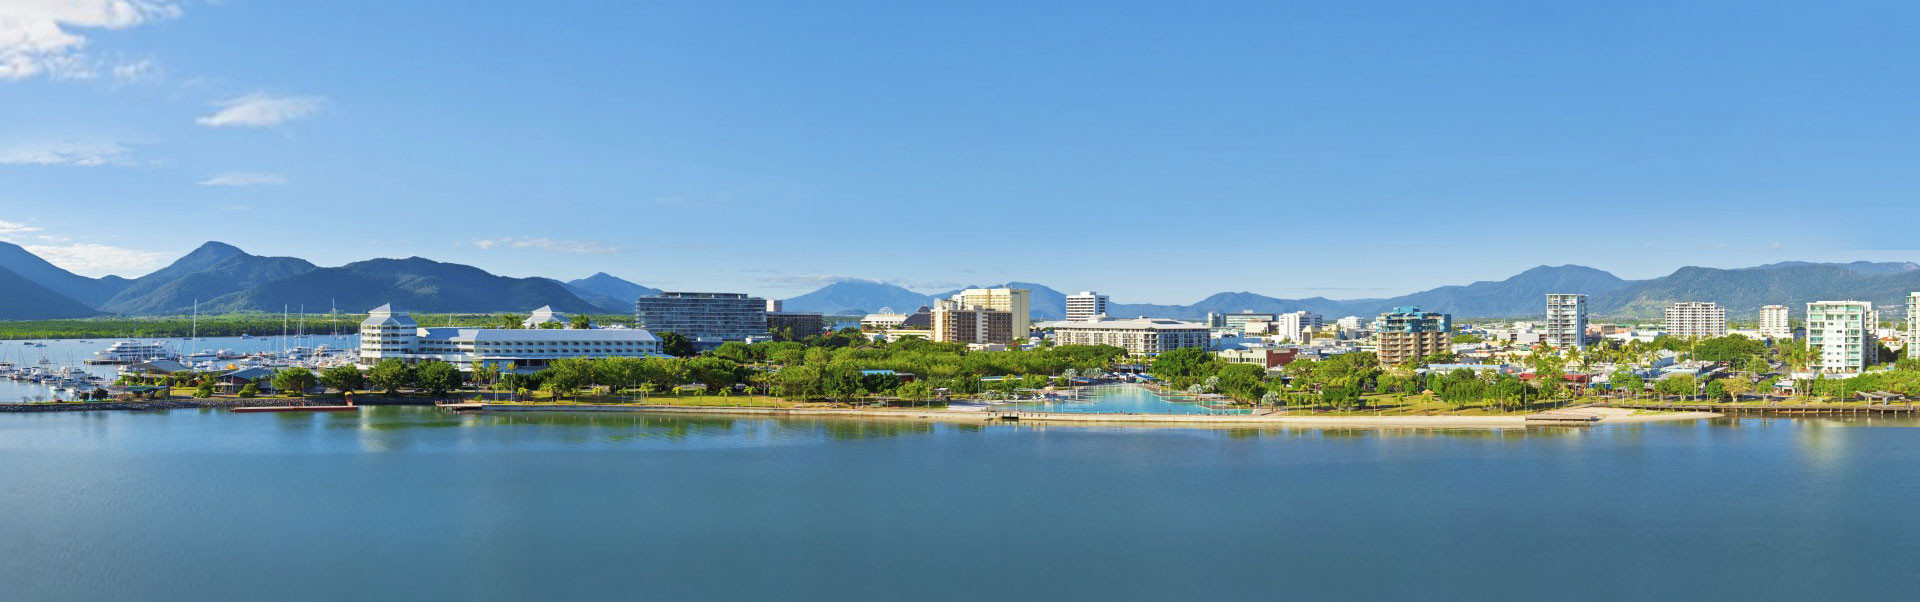 Don't miss these top spots in Cairns!